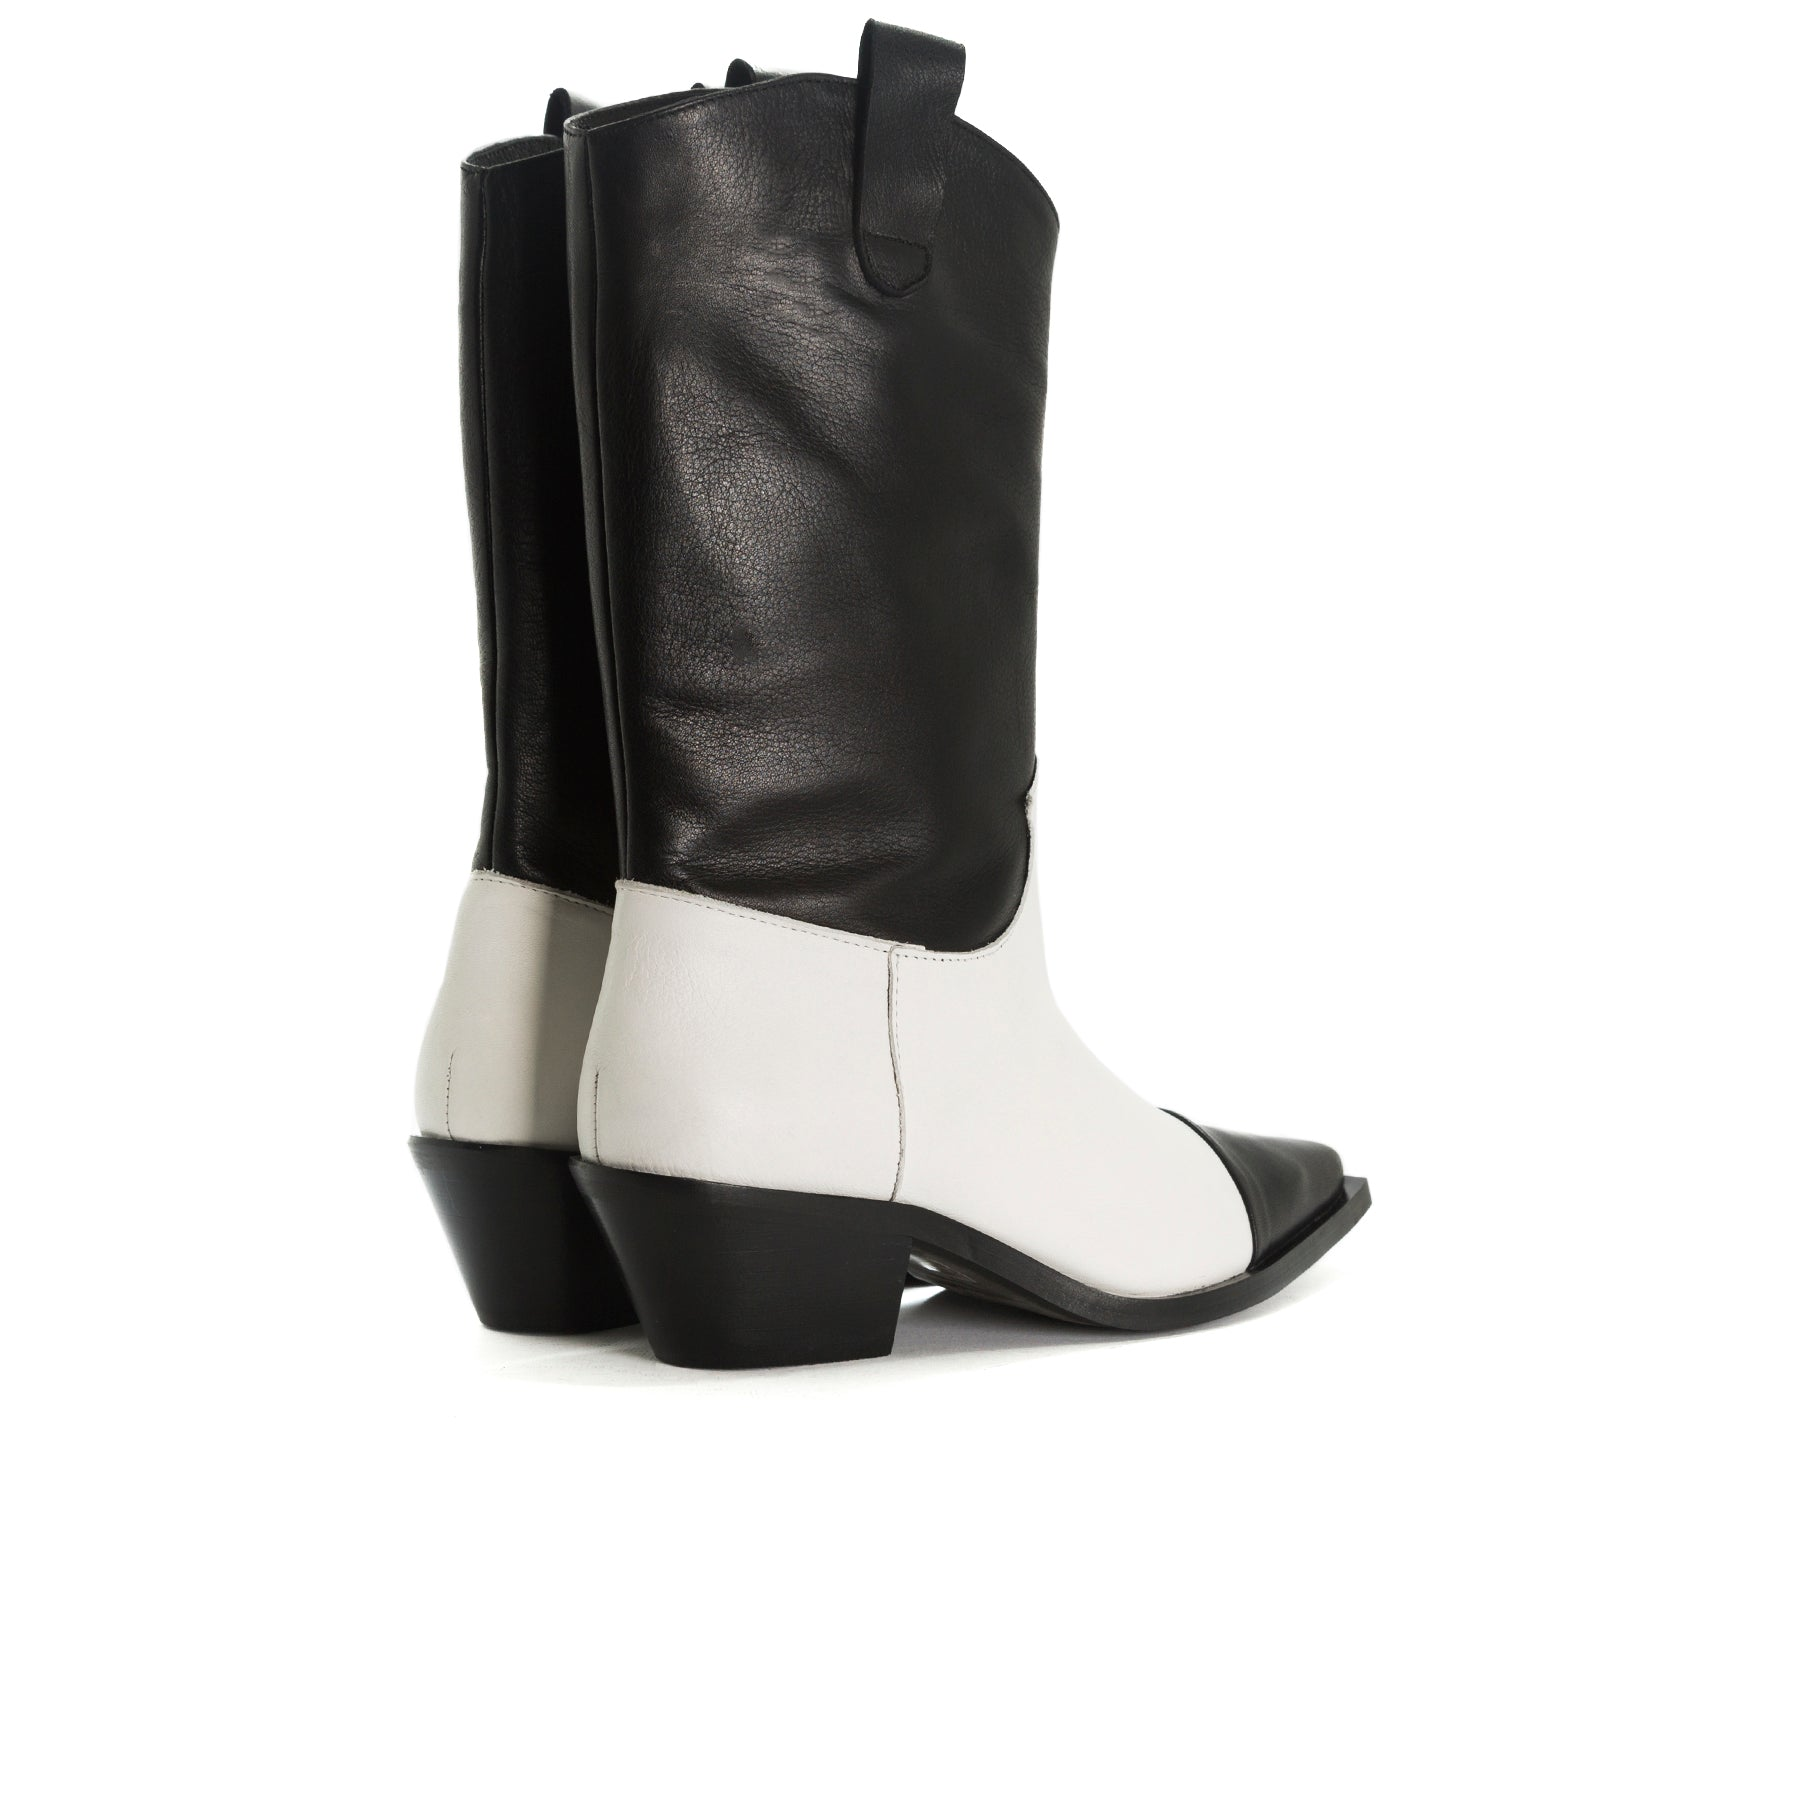 Annamaria Black&White Leather Ankle Boots